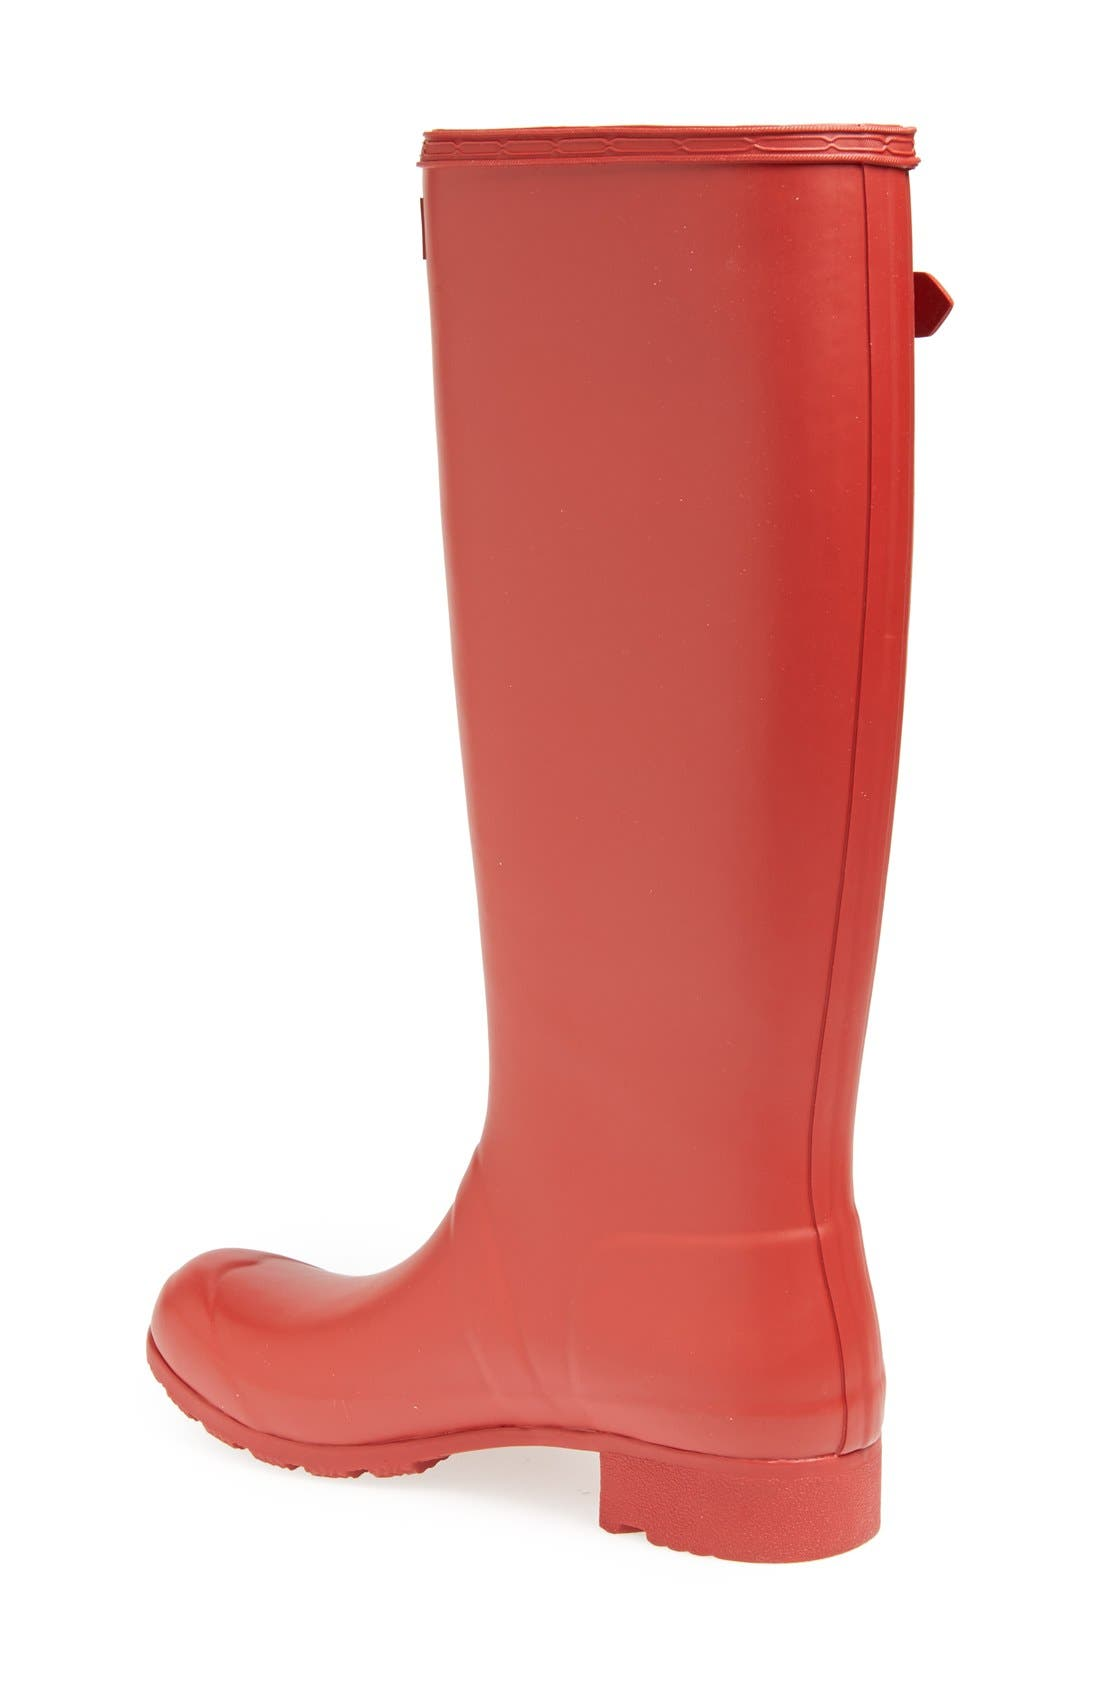 'Tour' Packable Rain Boot,                             Alternate thumbnail 99, color,